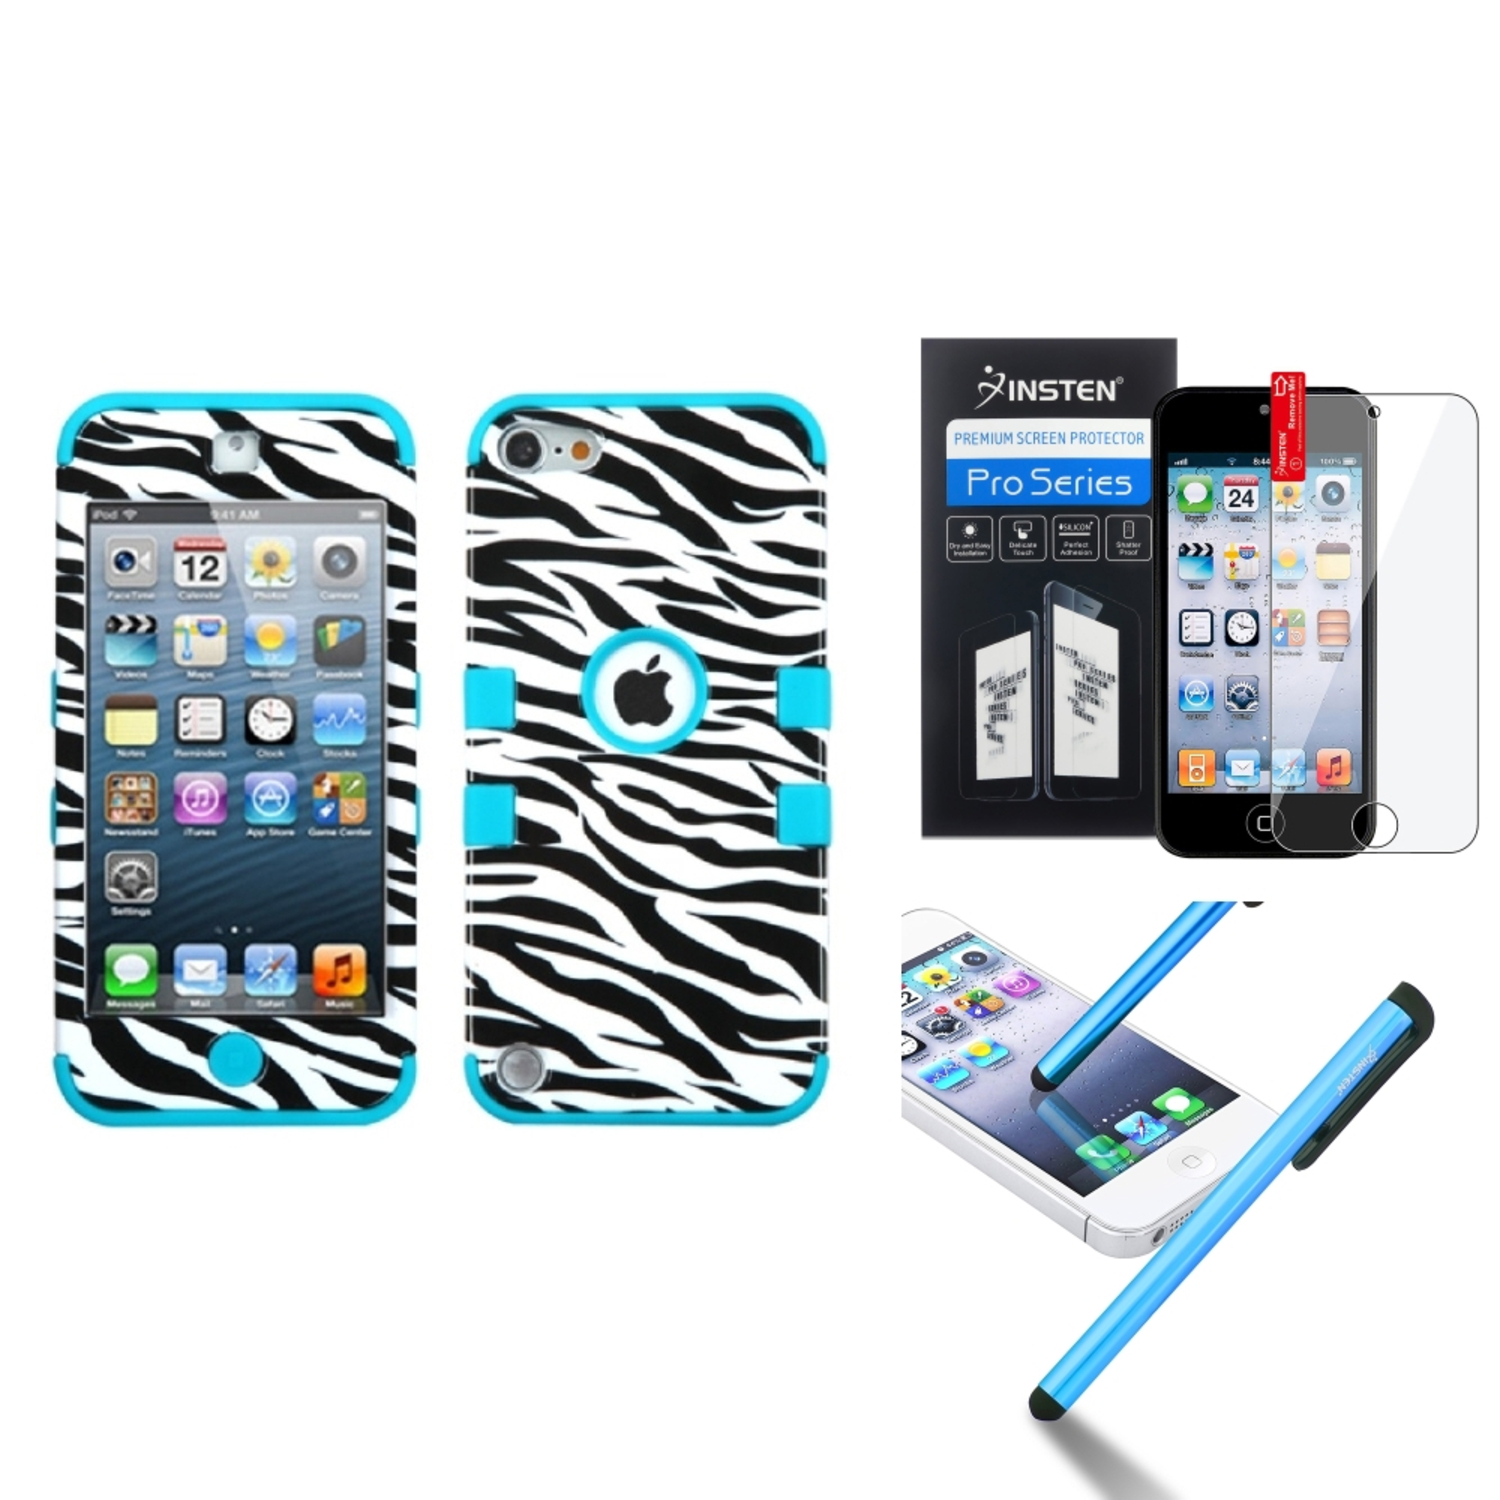 Insten Zebra Skin/Tropical Teal TUFF Hybrid Hard Case For iPod touch 6 6G 5 5G +Protector+Pen (3-in-1 Accessory Bundle)